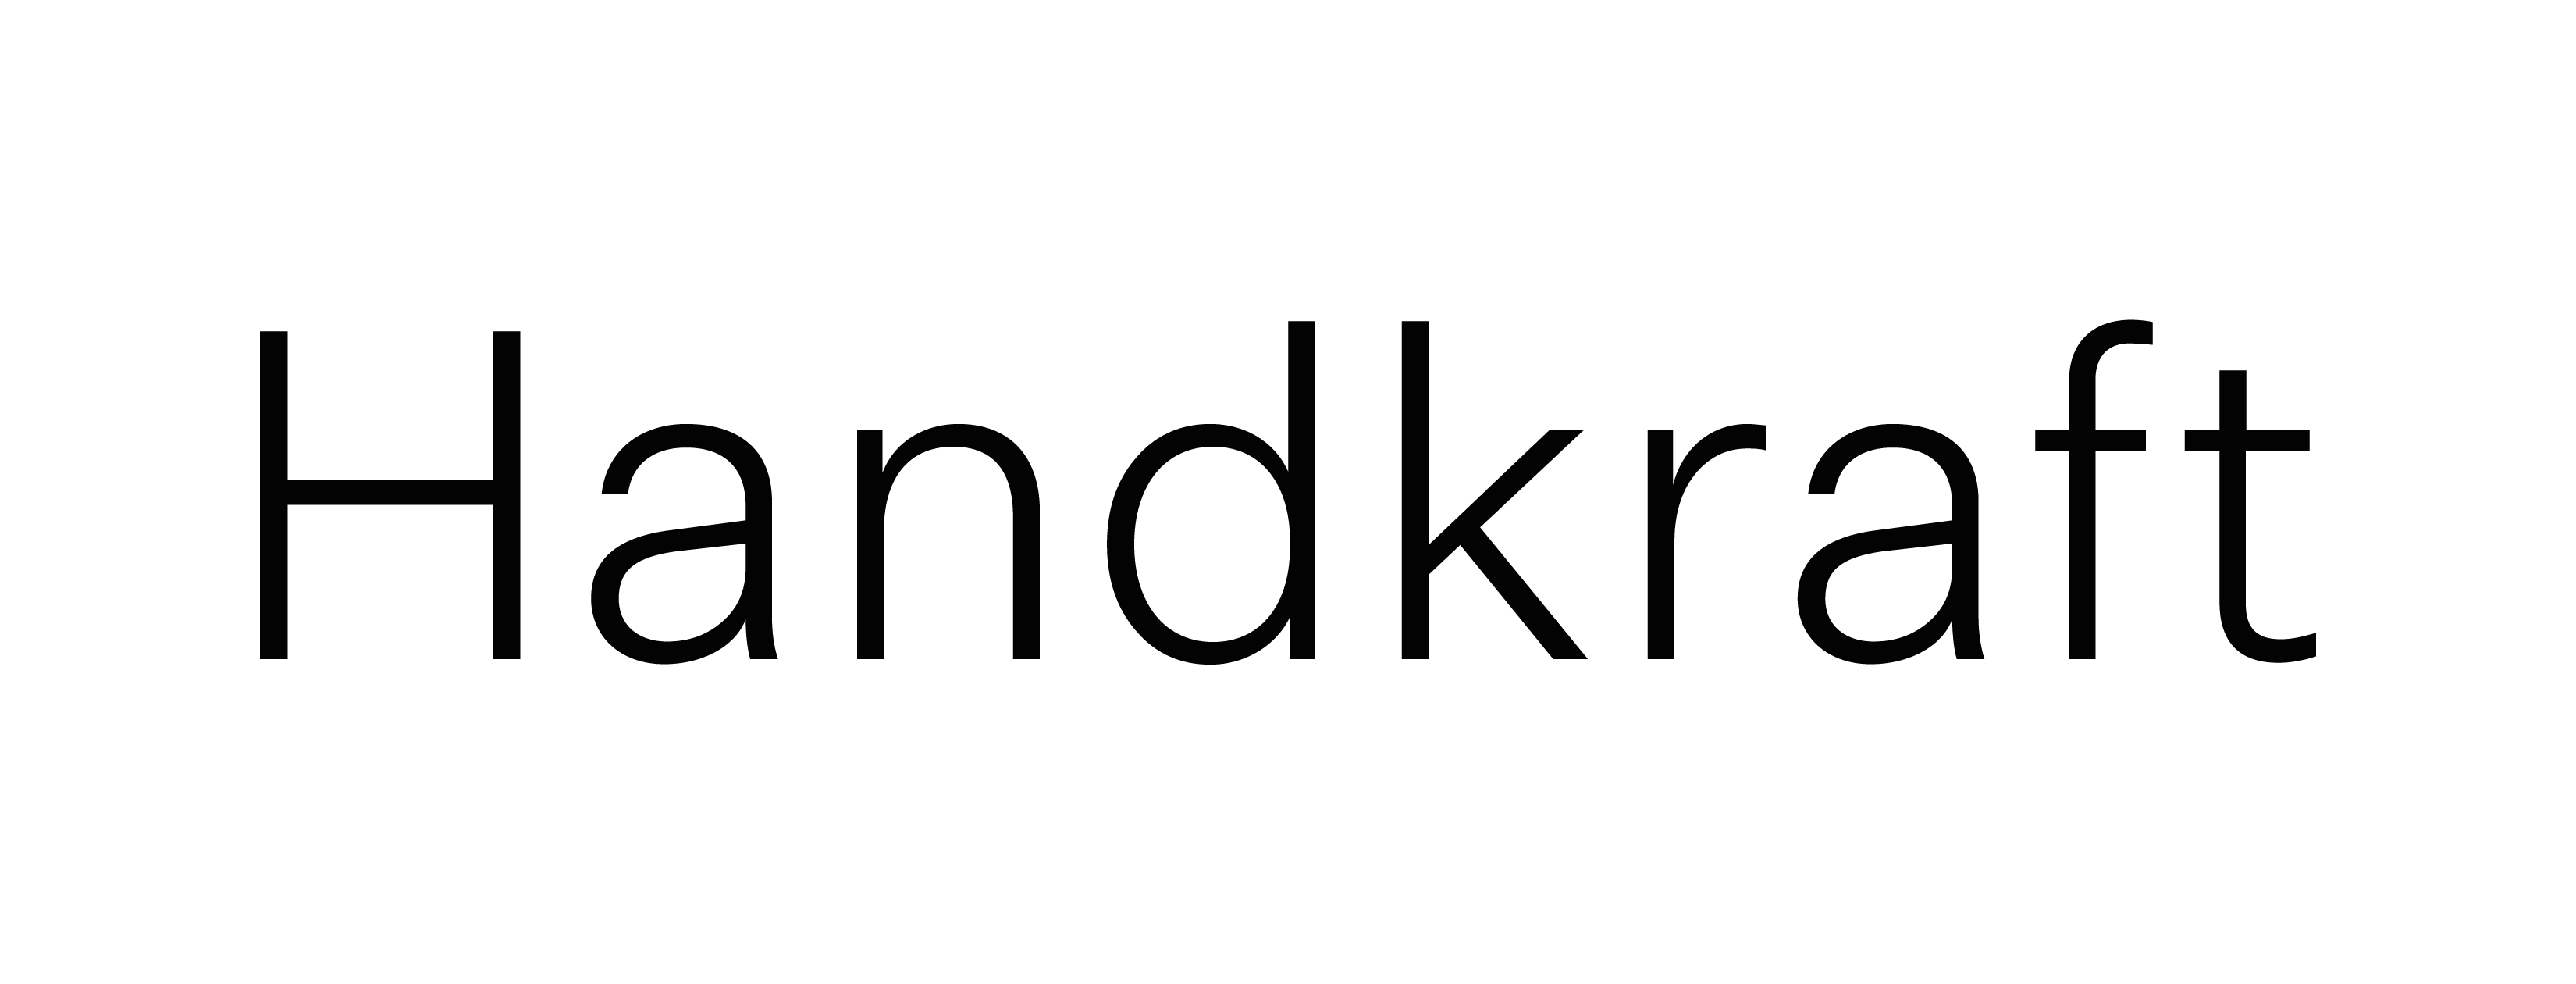 handkraft_main_logo_black